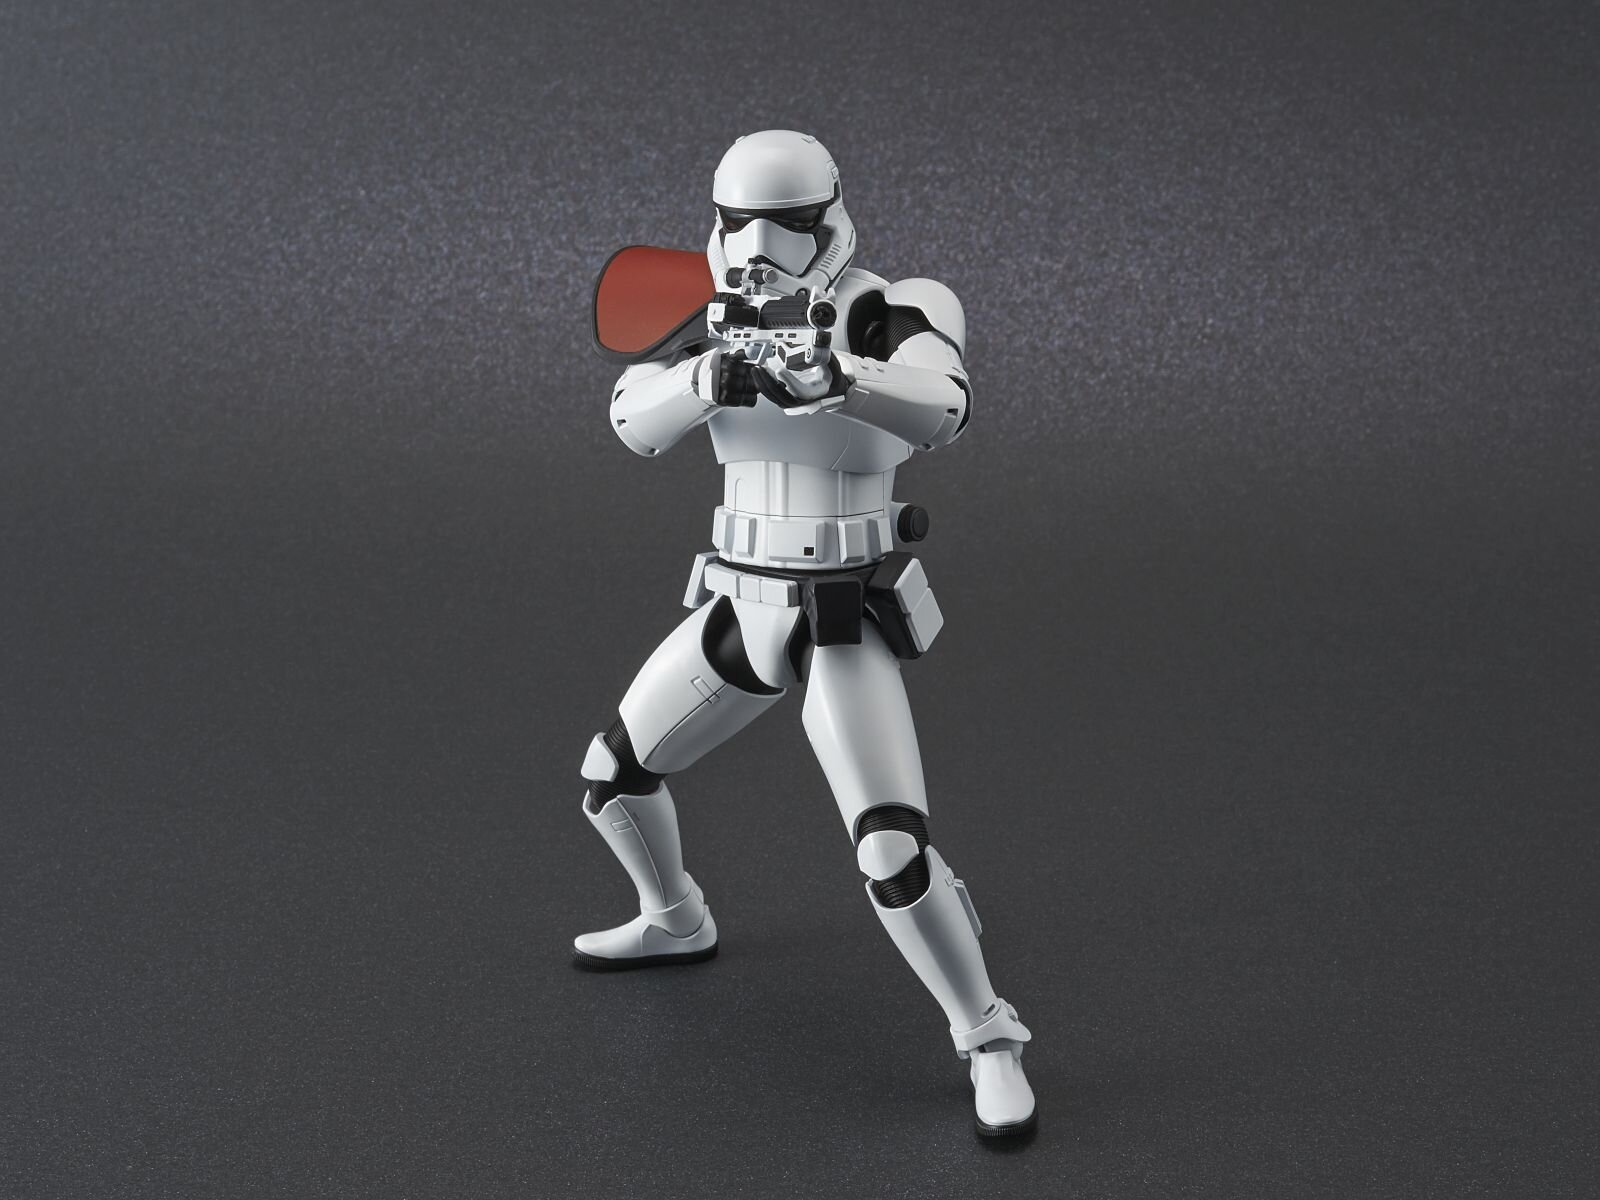 ep9_stormtrooper_action01.jpg